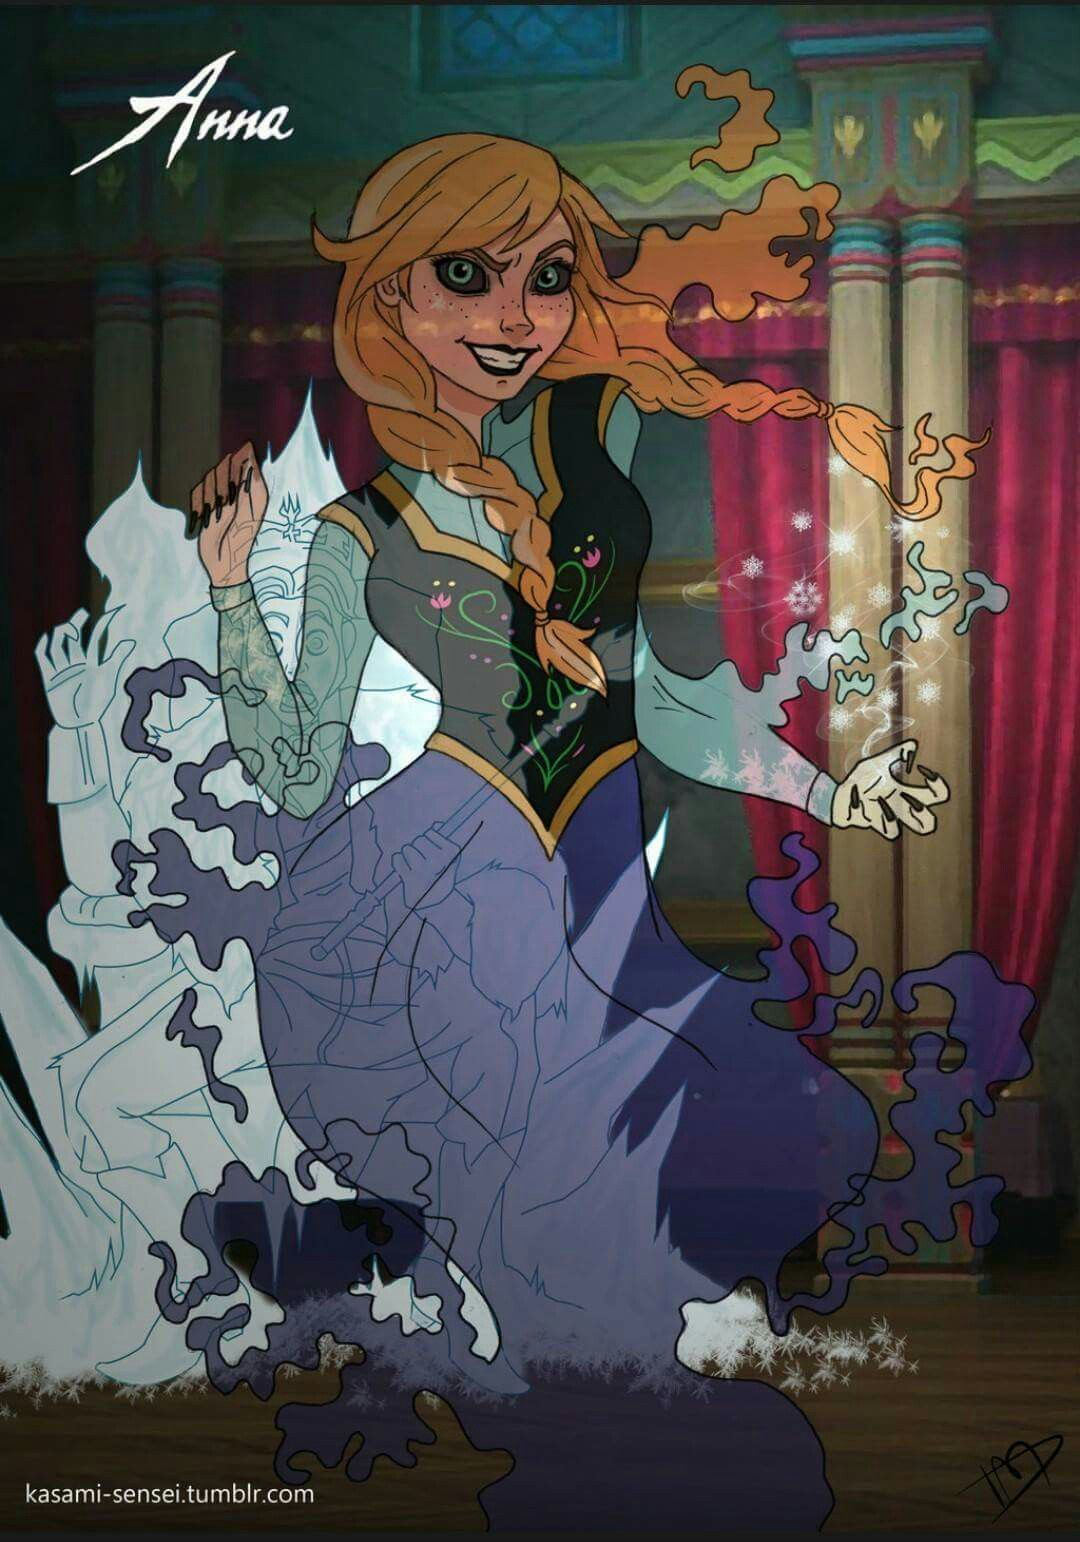 Disney princesses reimagined as villains 12